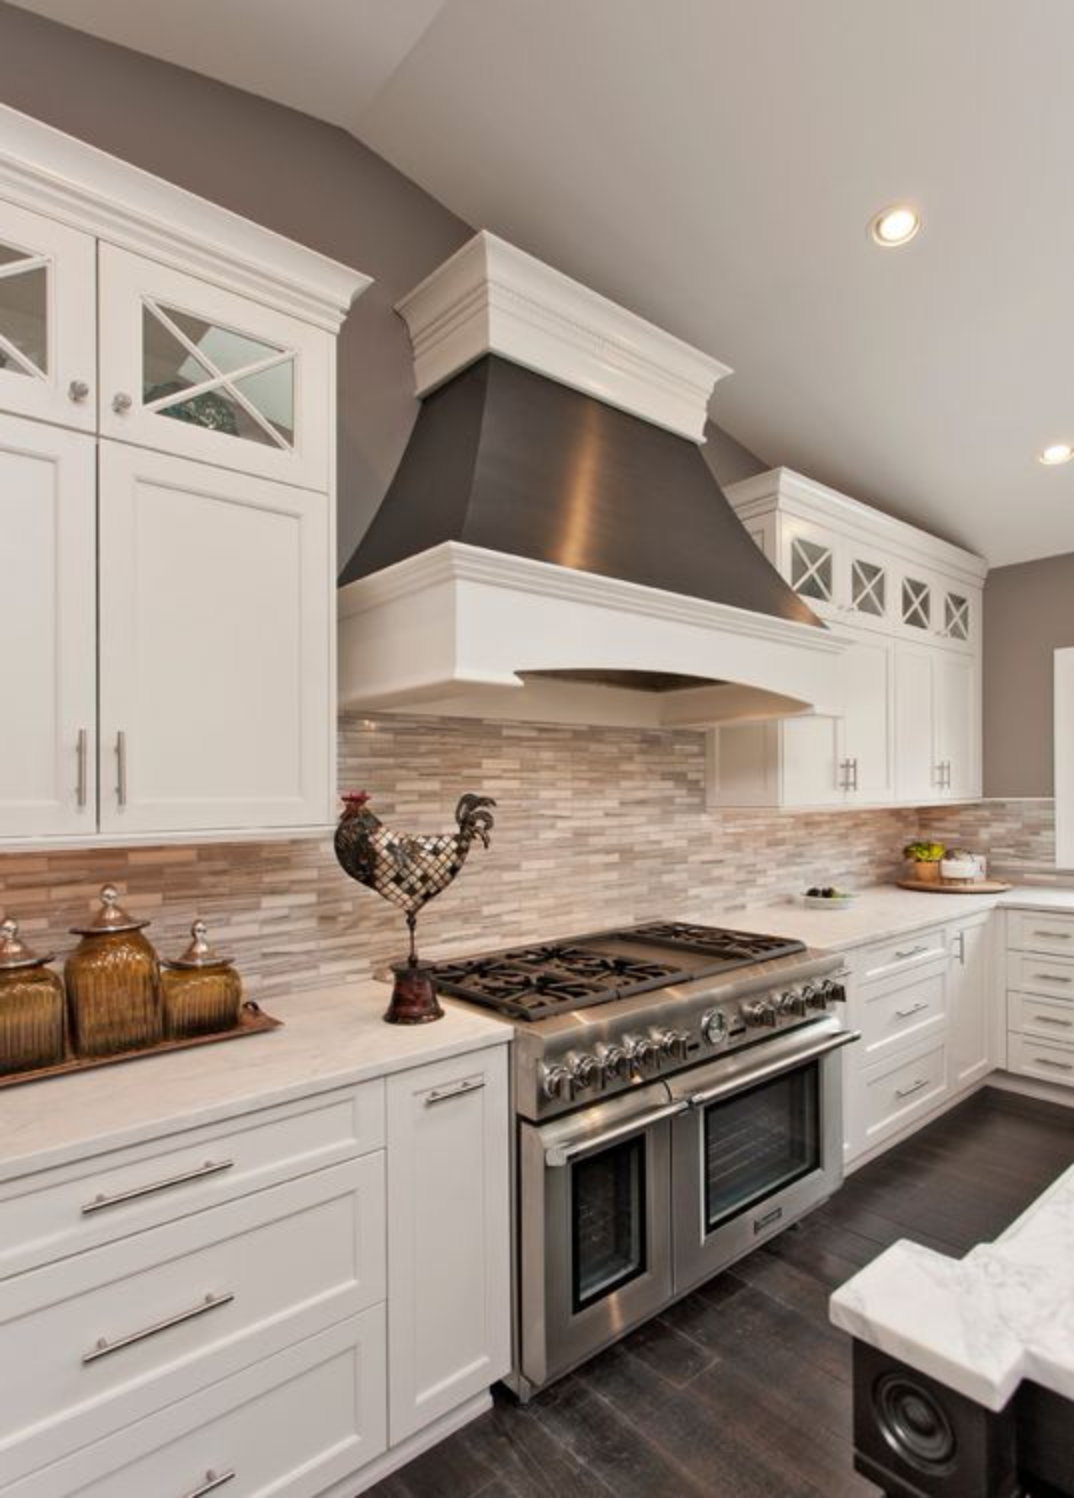 Our kitchen remodeling tips will help you